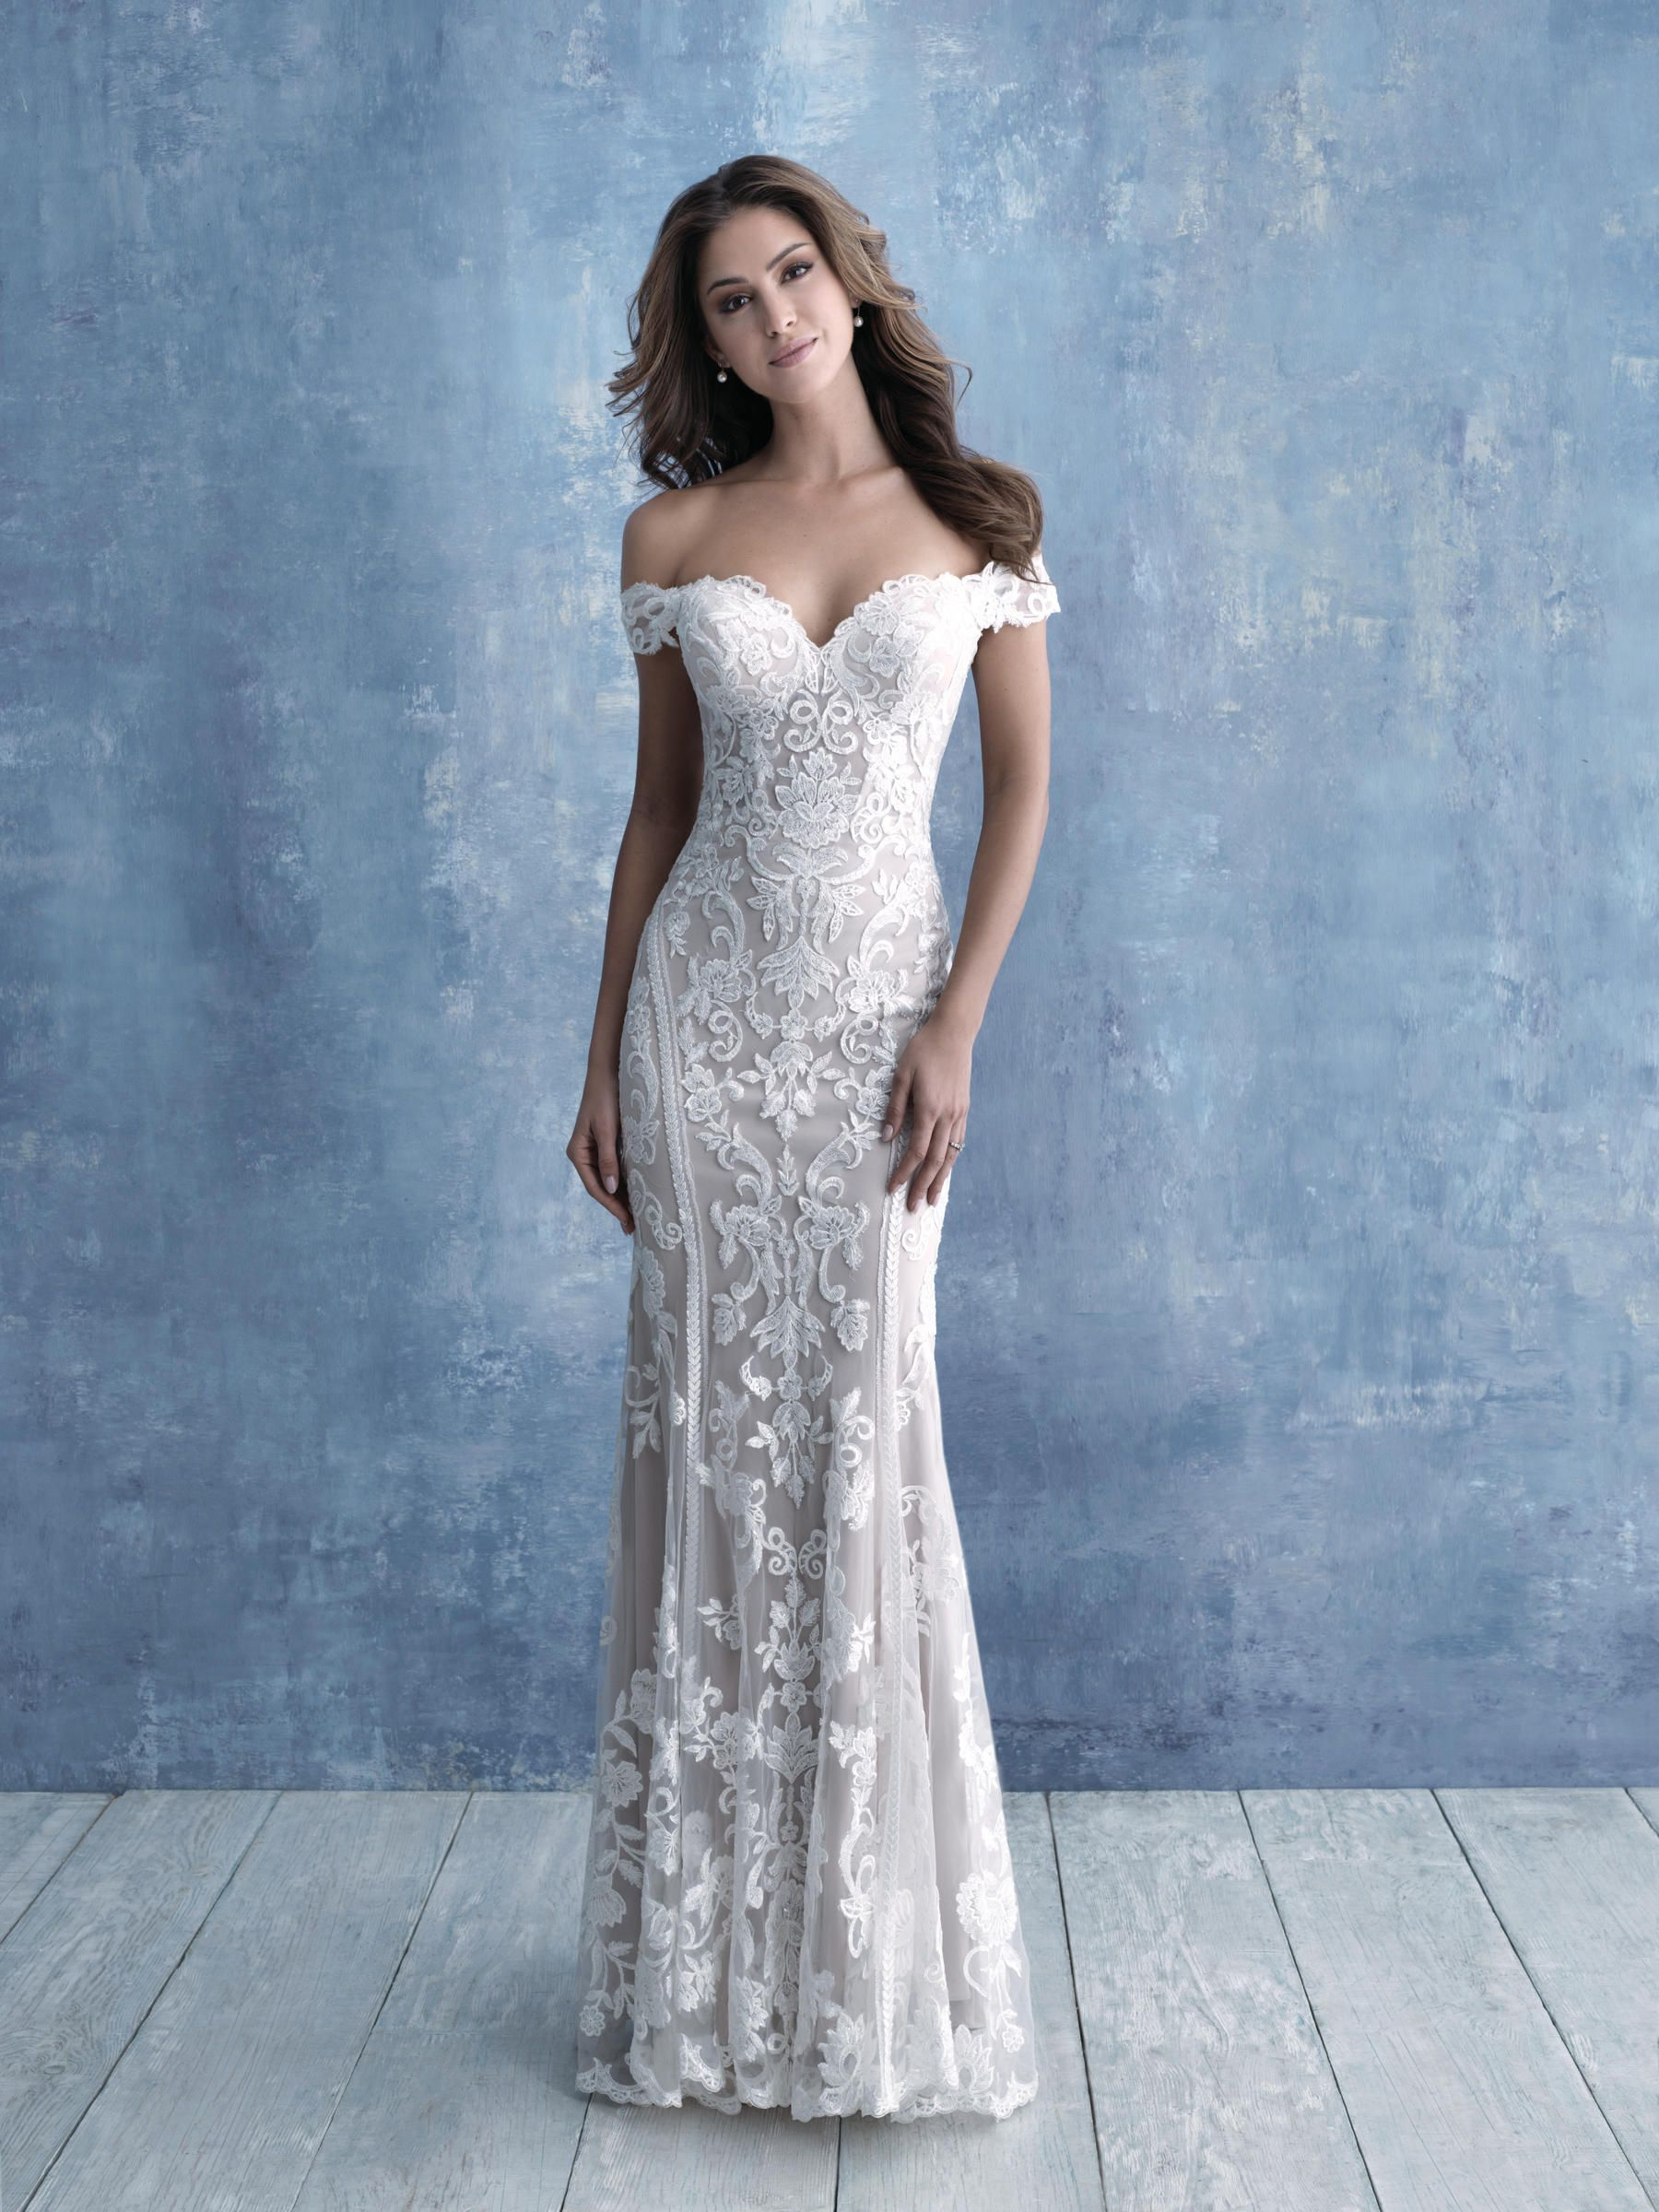 Allure Bridals 9704 The Wedding Bell Tacoma Wa Bridal Gowns Wedding Gowns Bridesmaids Prom Evening Gowns Flower Girls Accessories In 2020 Sheath Wedding Dress Lace Wedding Dresses Kleinfeld Allure Wedding Dresses [ 2400 x 1800 Pixel ]